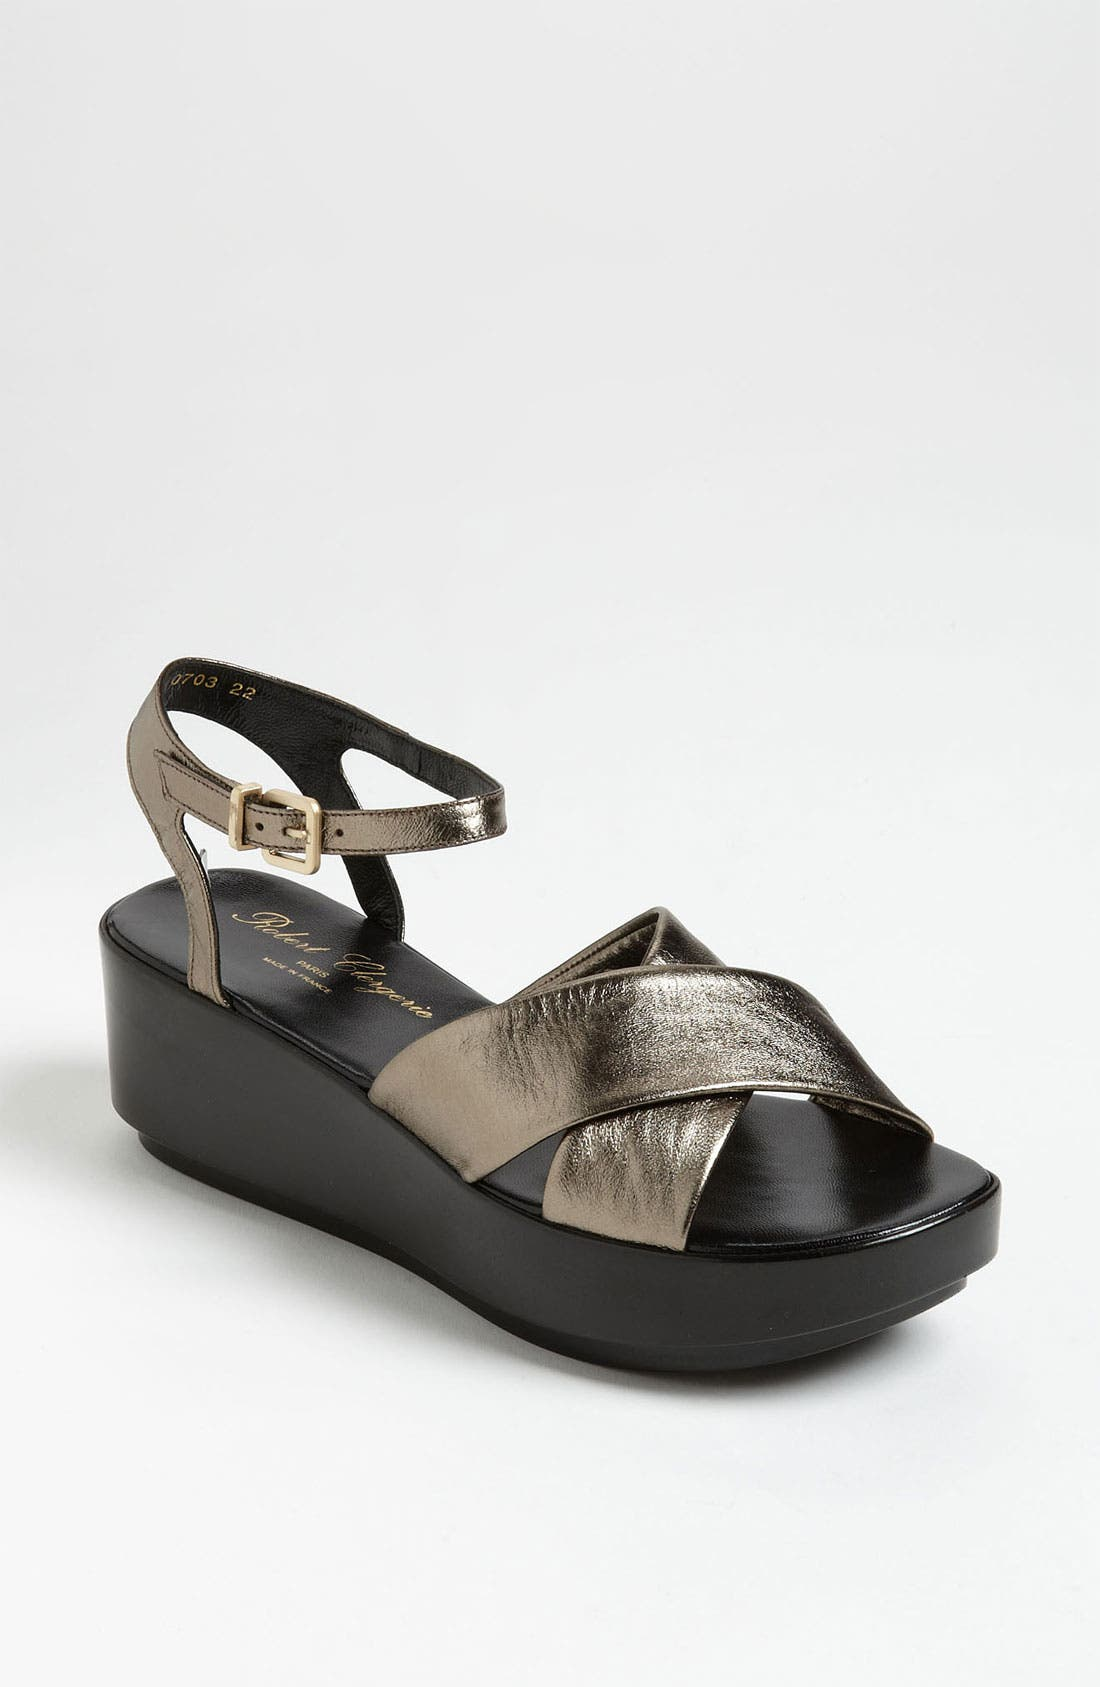 Main Image - Robert Clergerie 'Pima' Wedge Sandal